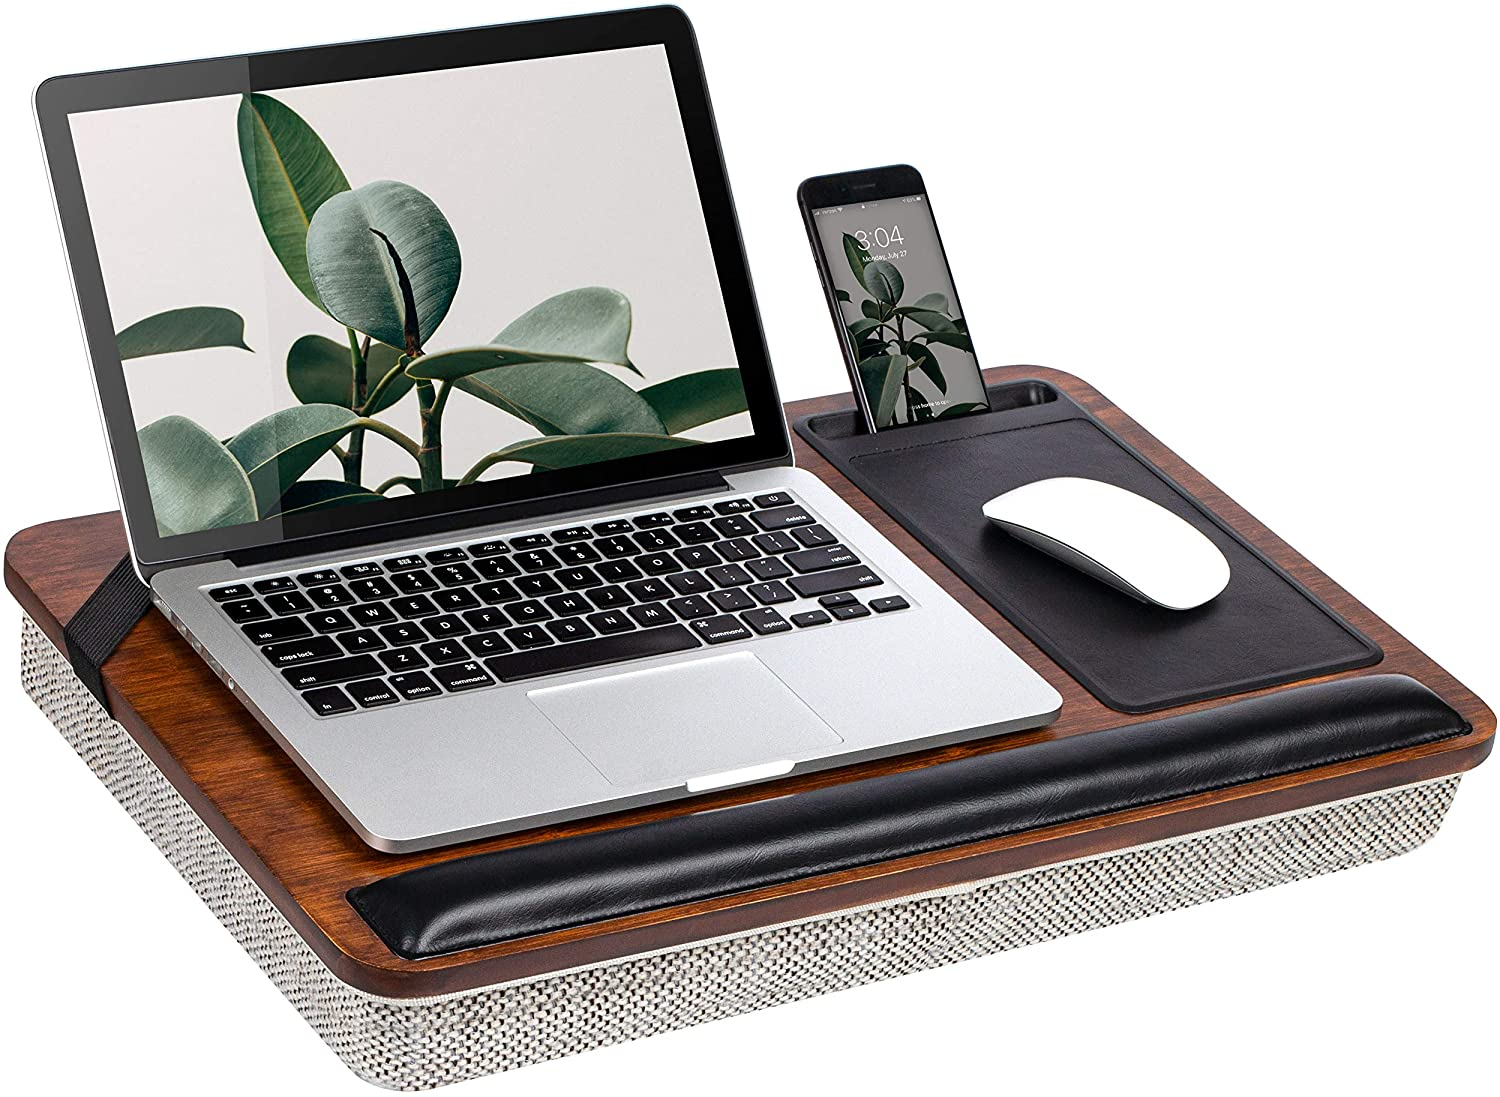 Rossie Home Premium Bamboo Lap Desk with Wrist Rest, Mouse Pad, and Phone Holder - Fits Up to 15.6 Inch Laptops